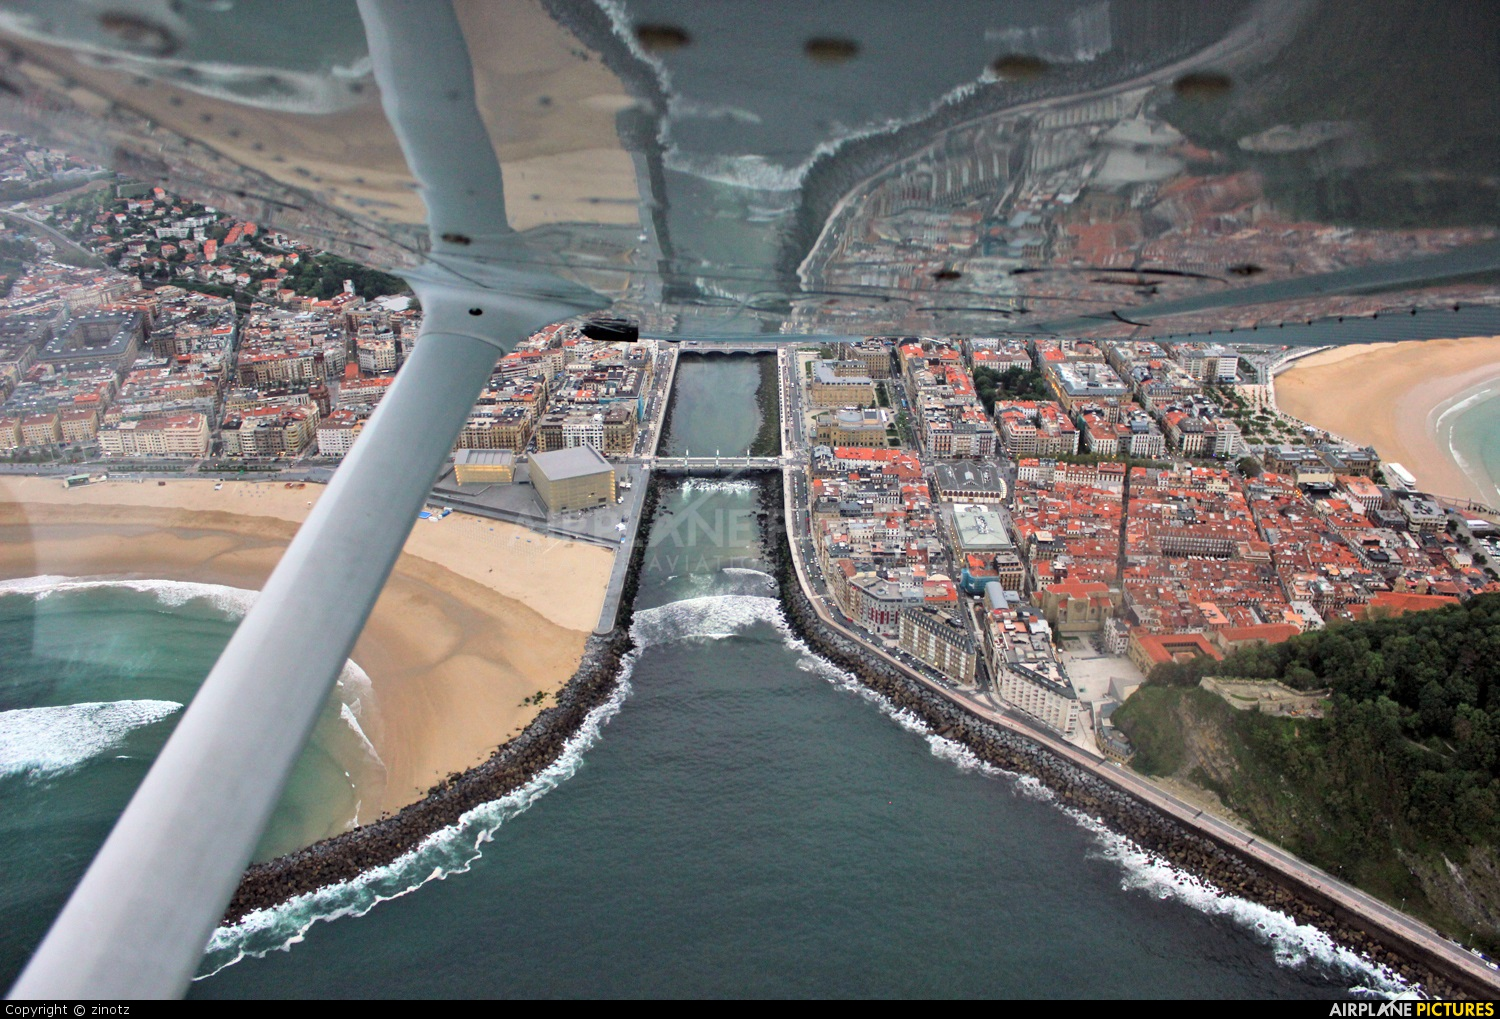 Private EC-KPN aircraft at In Flight - Spain